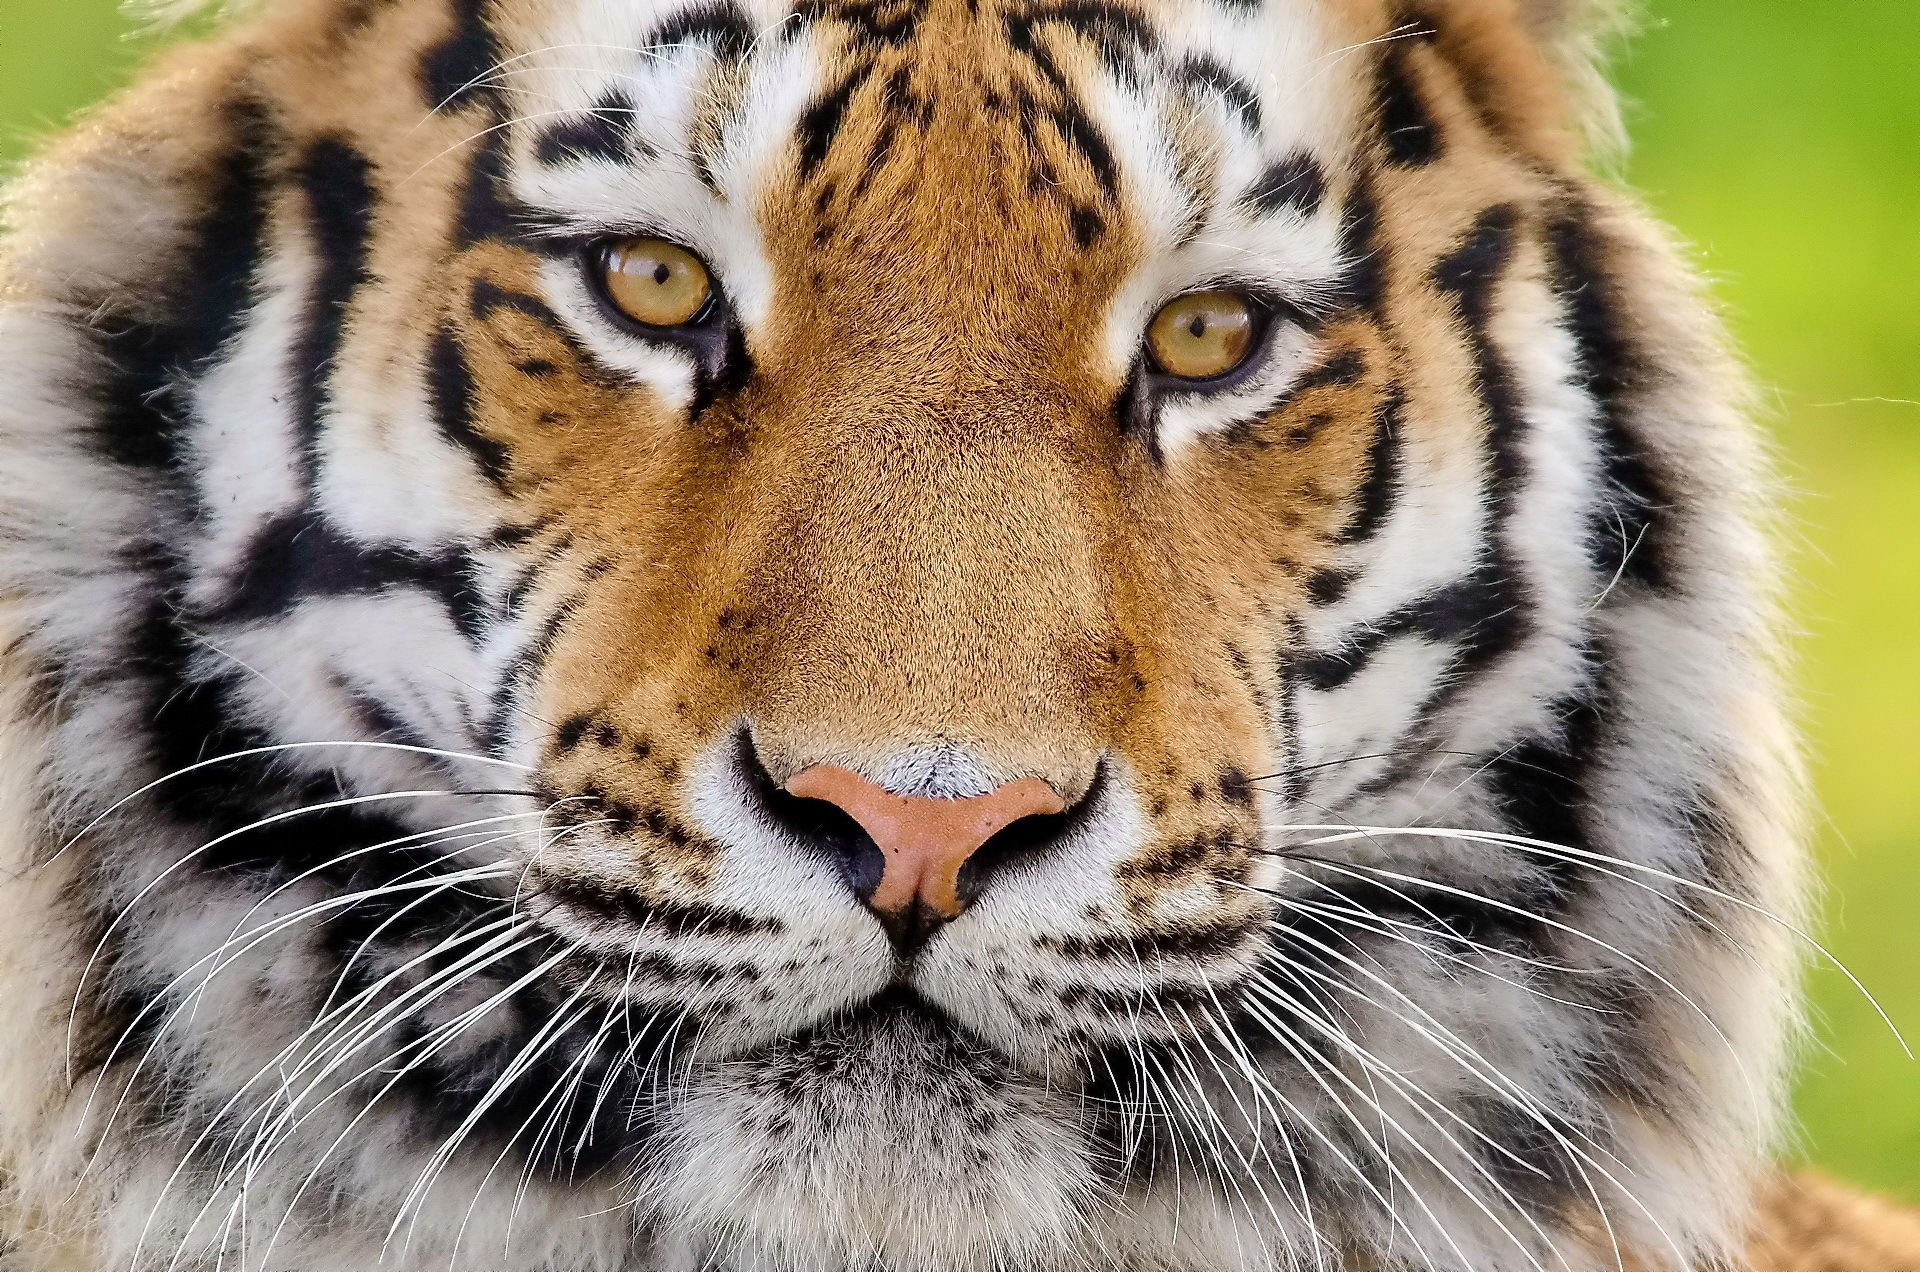 95655 download wallpaper Animals, Tiger, Muzzle, Fluffy, Predator screensavers and pictures for free